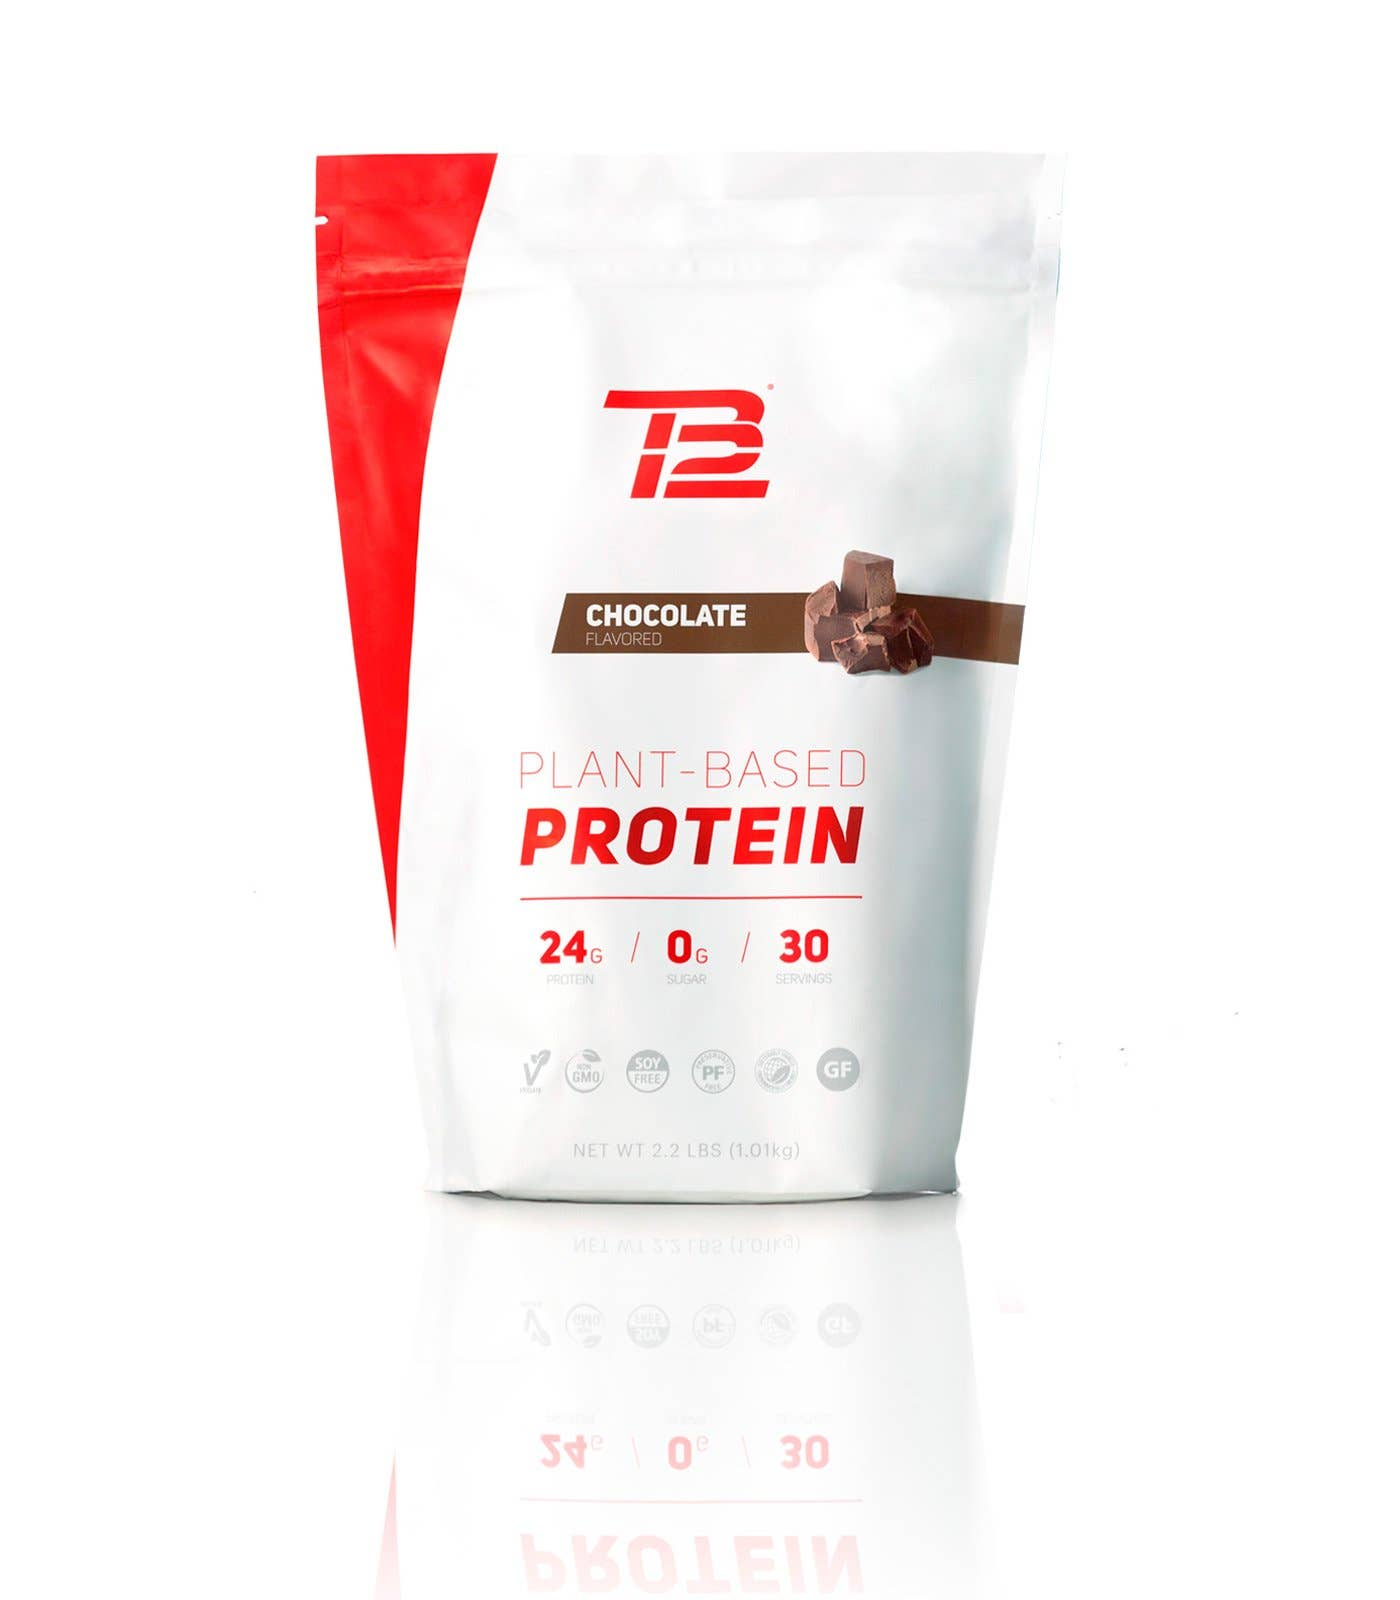 Chocolate TB12 Plant-Based Protein